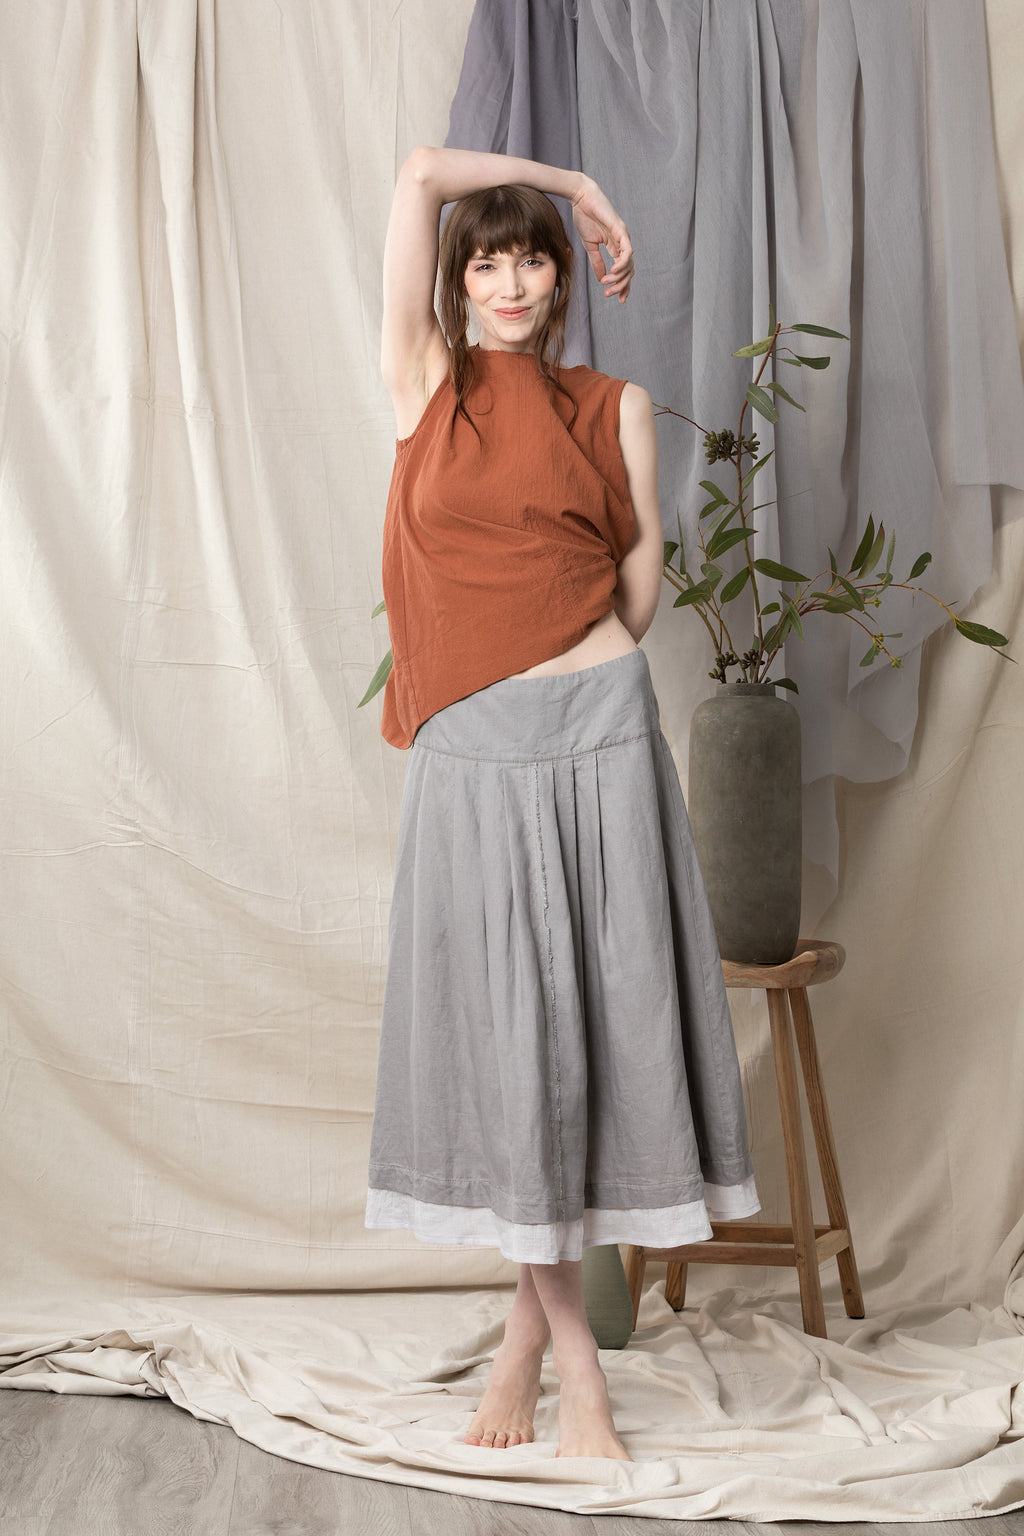 Morning Cloak Skirt Skirts Ethical Sustainable Vegan Organic Australian fashion womens clothes